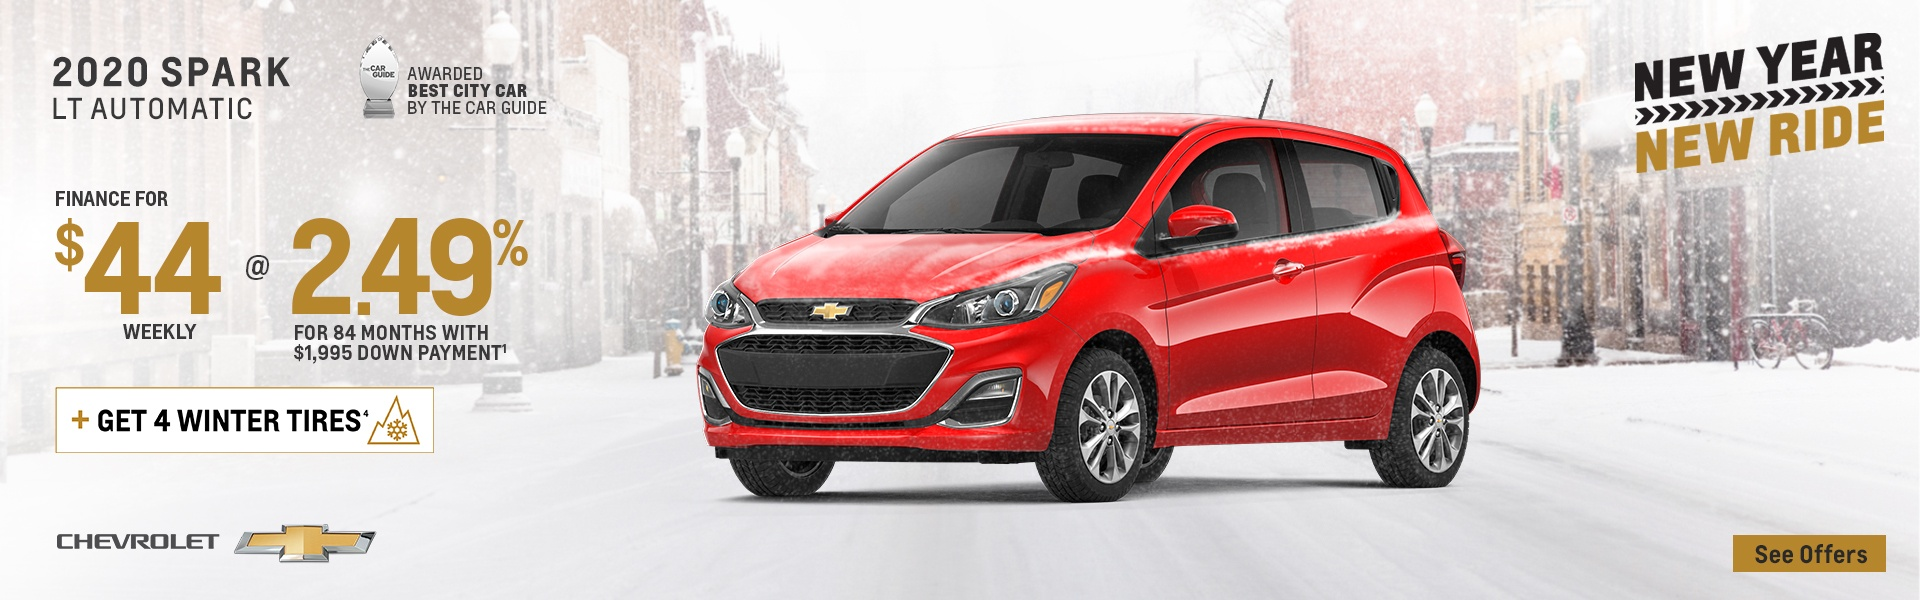 2020_CNT_Chevy_Multi_JAN_EN_T3_1920x600_v1_Spark